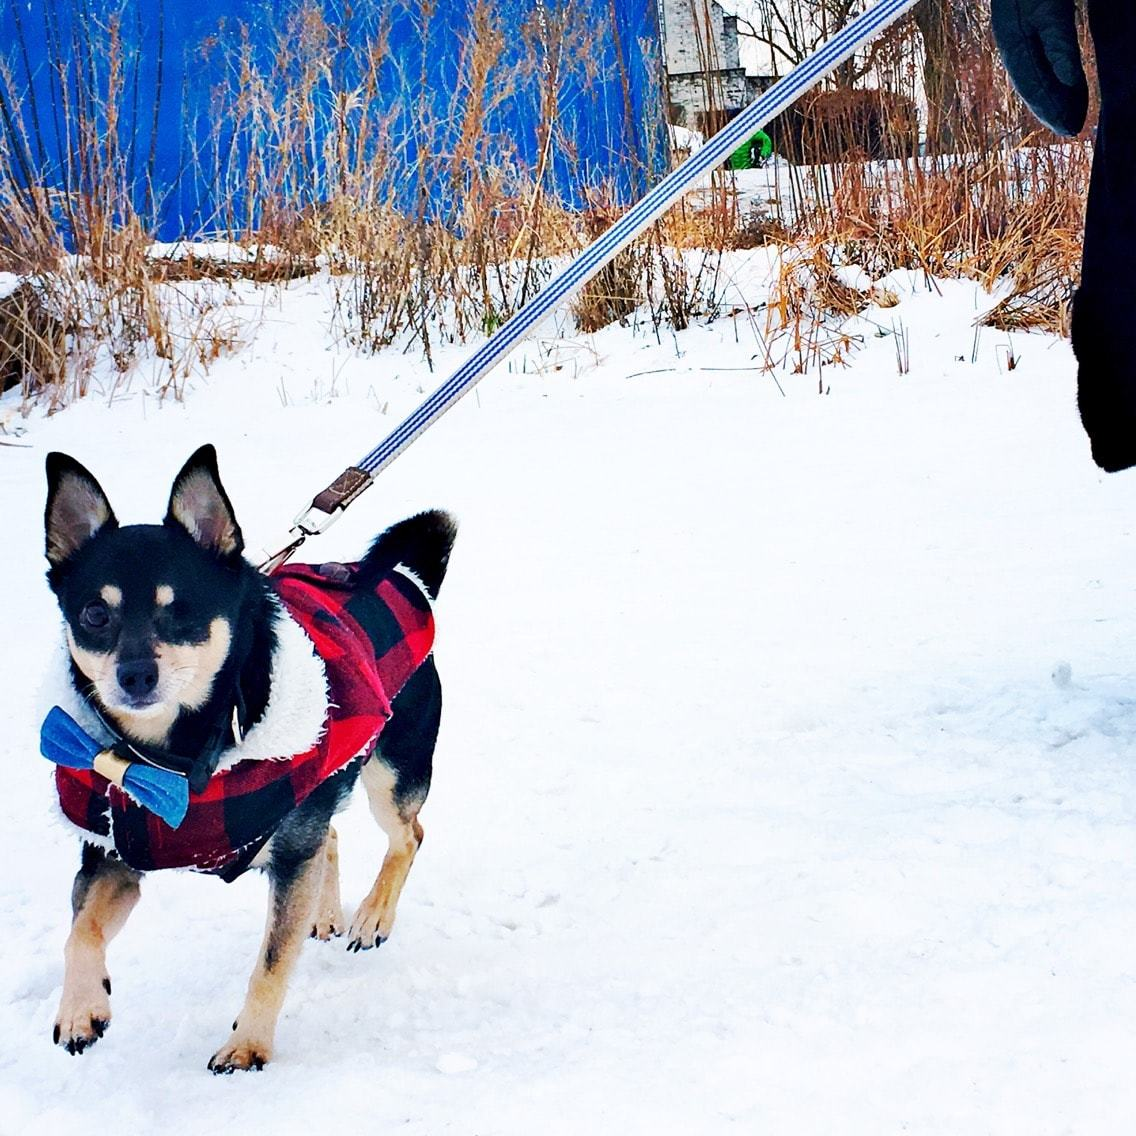 take your canine hiking for a fun activity during winter